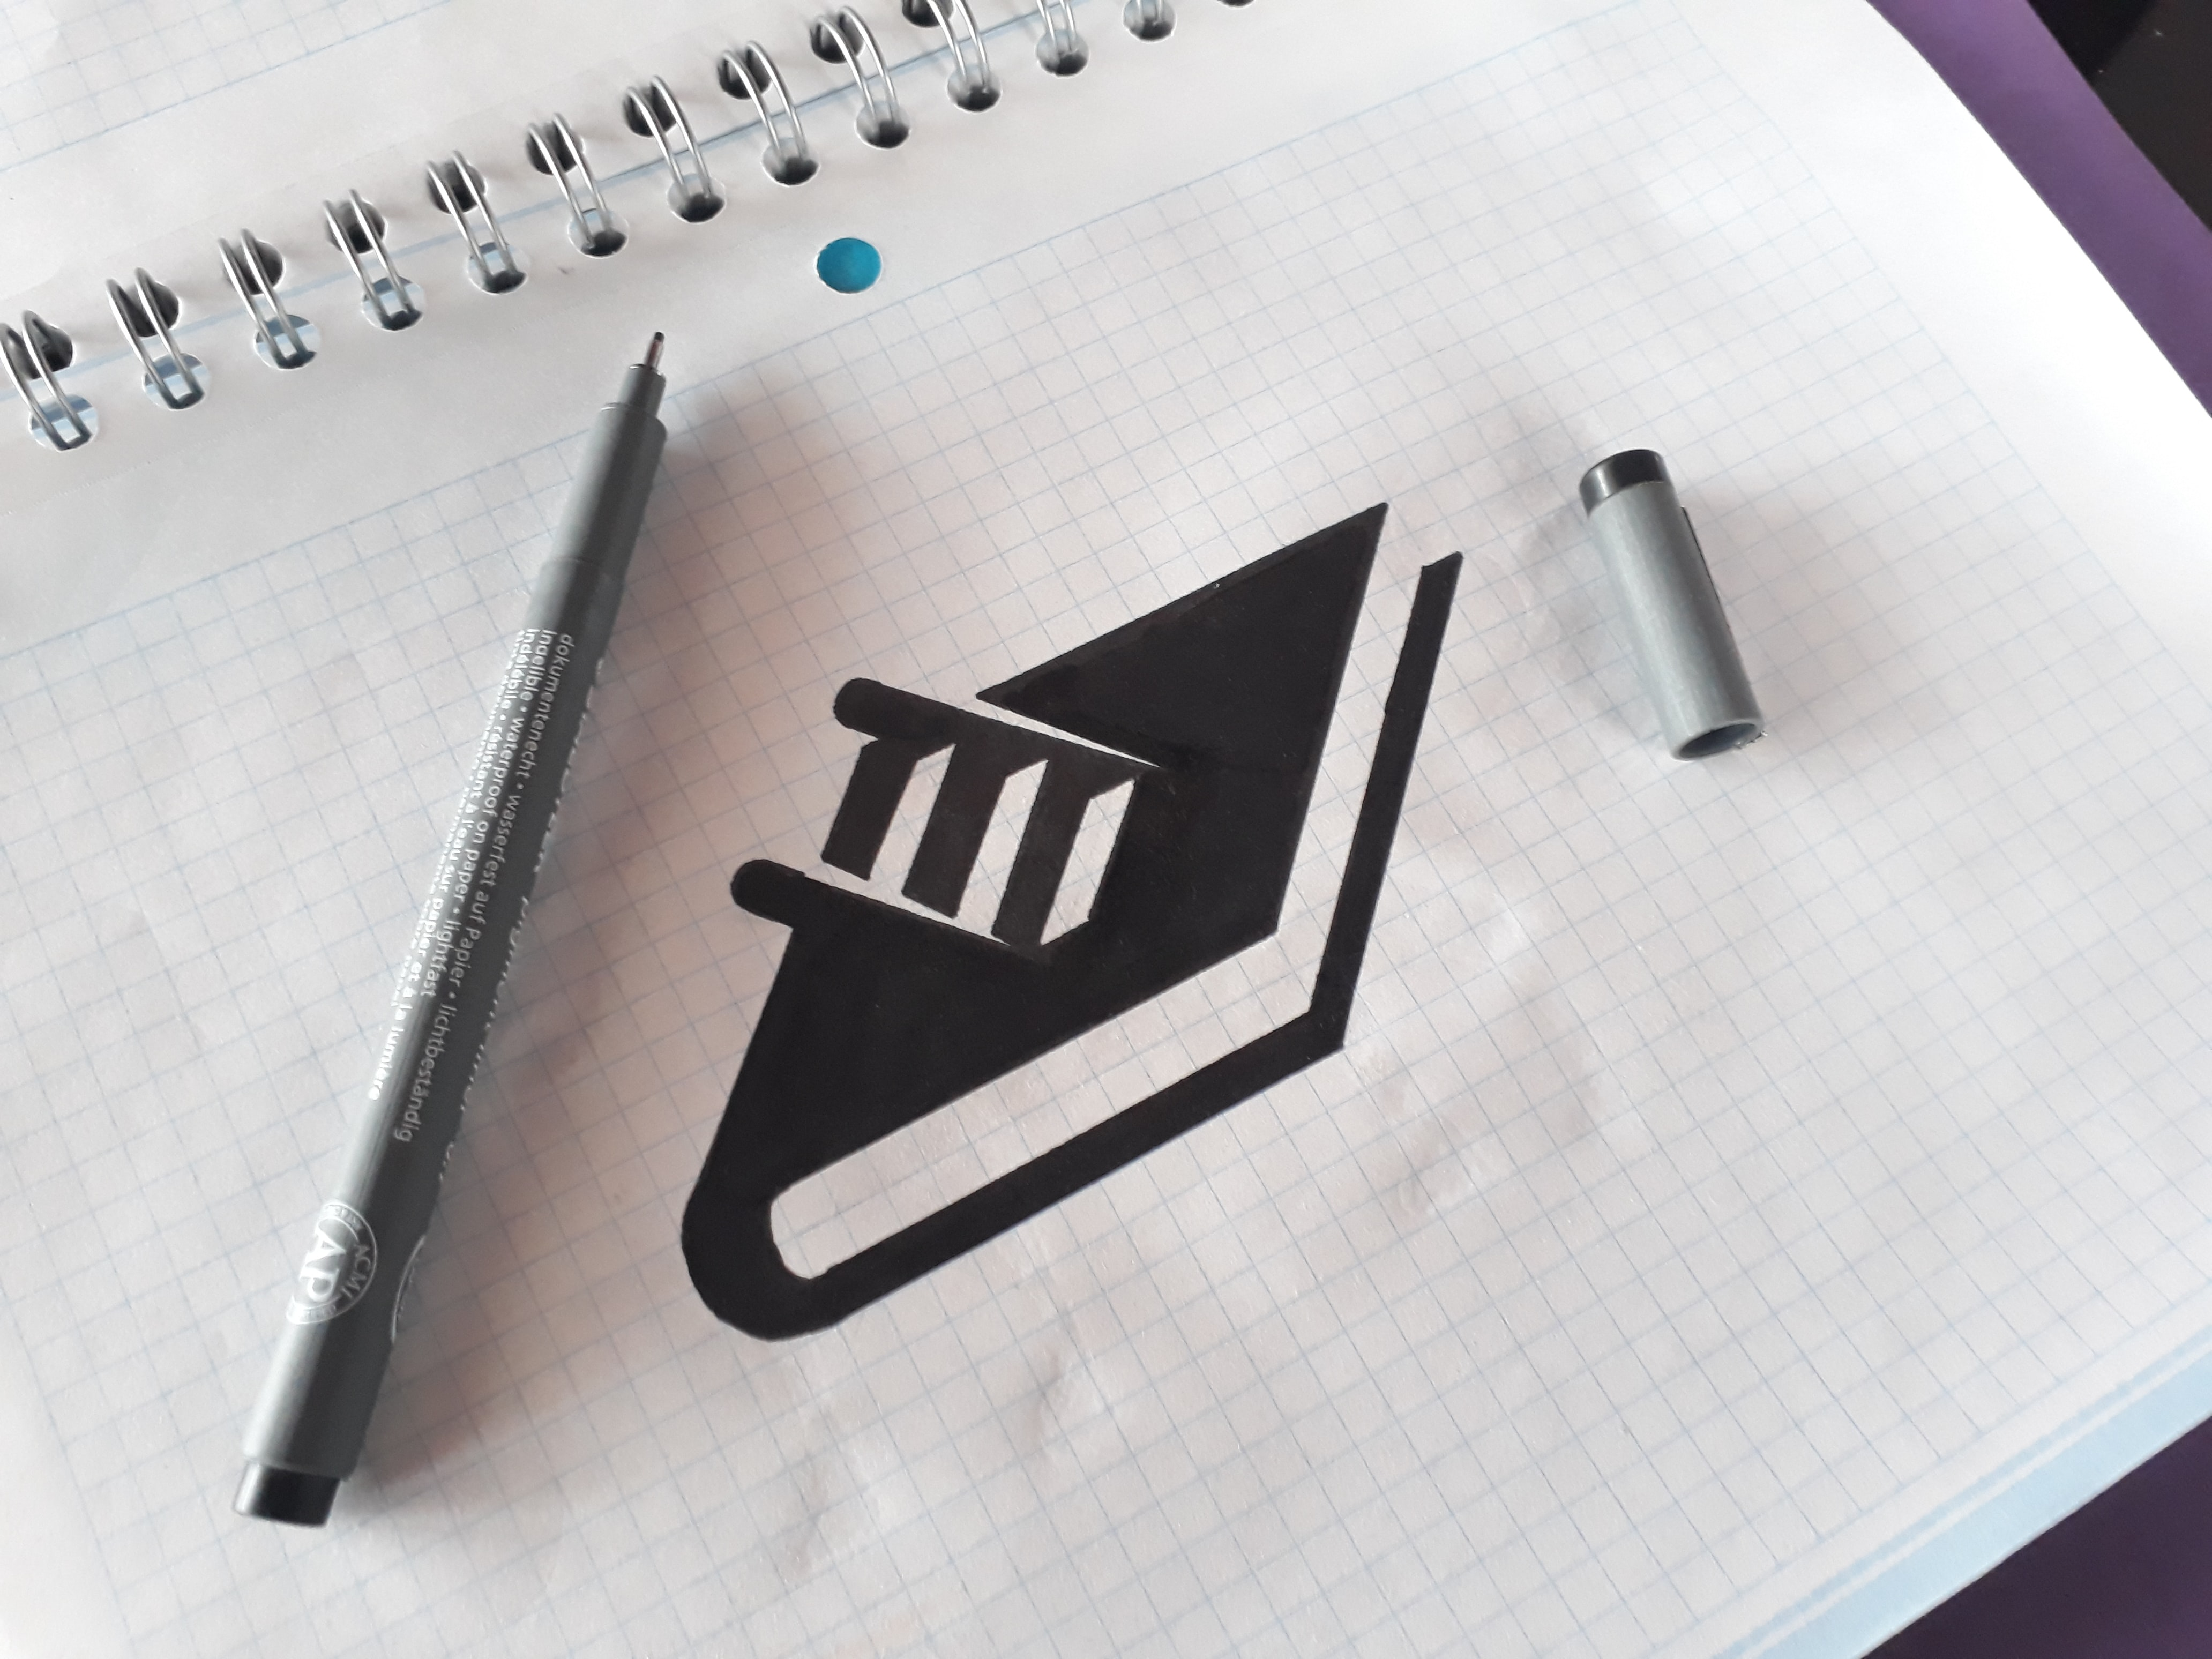 A drawing of a ladder coming from the cover of a book.